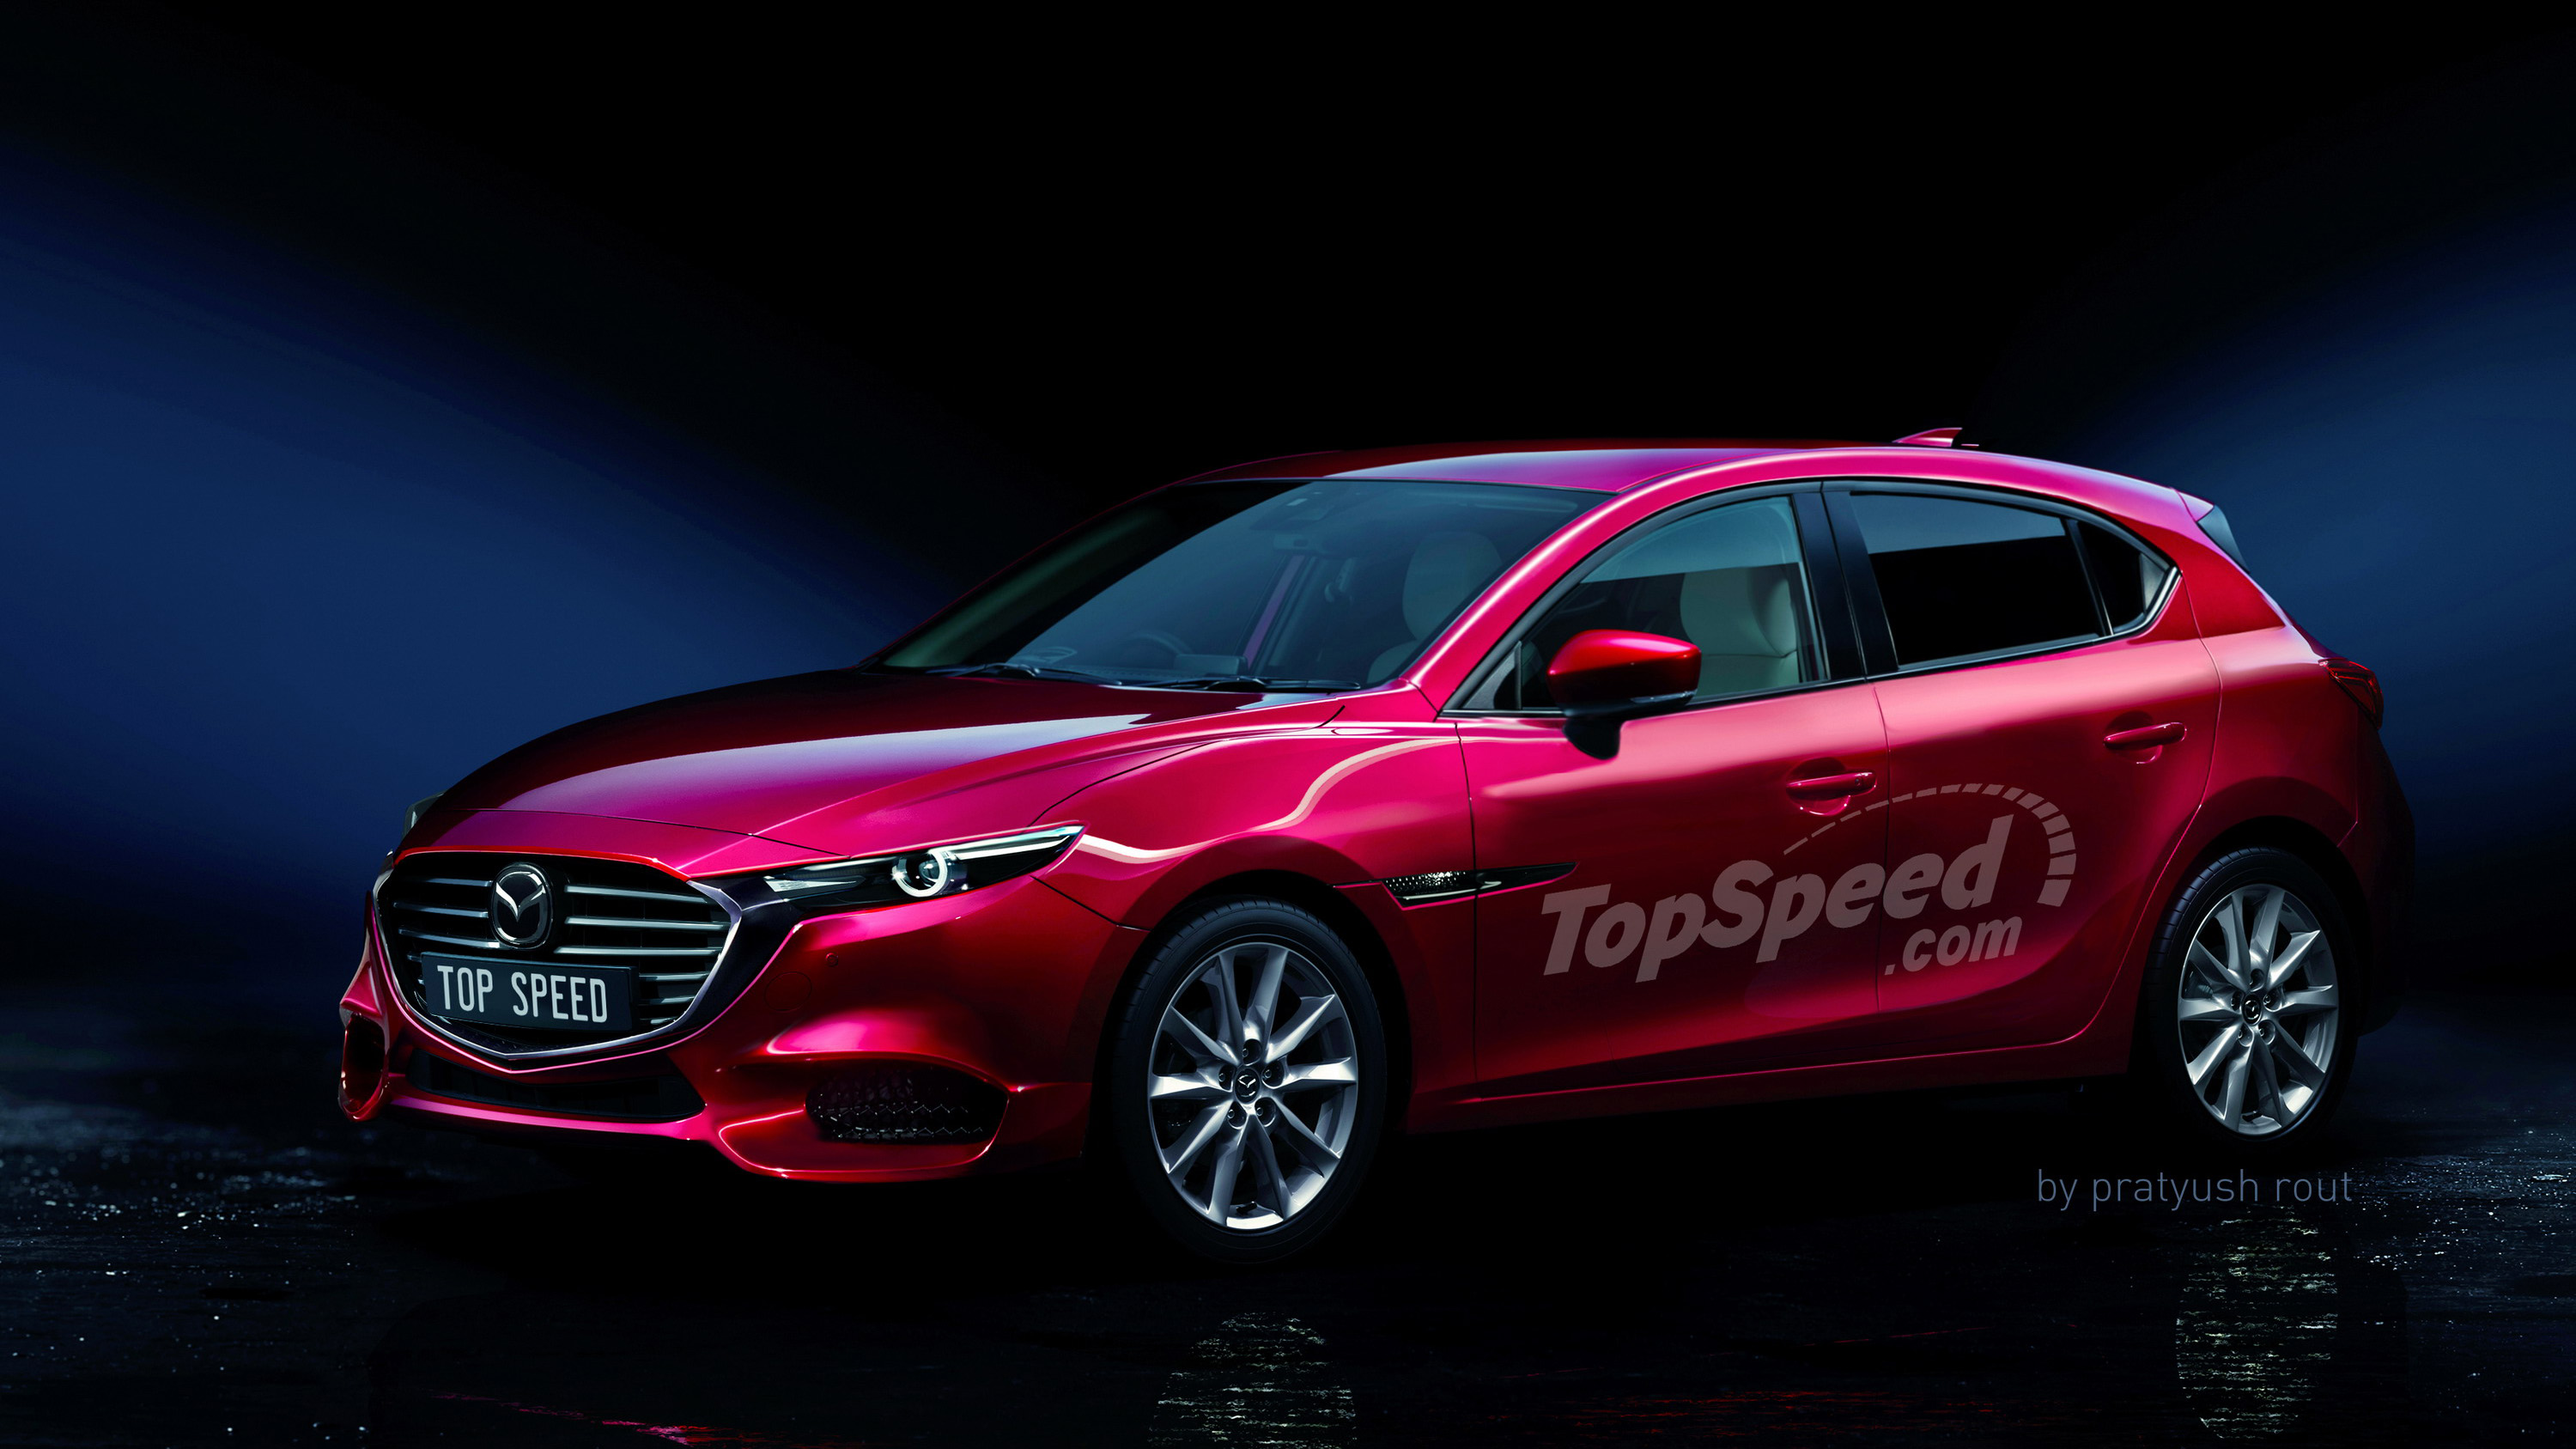 The New Mazda 3 Is Inspired By The Kai Concept And Will